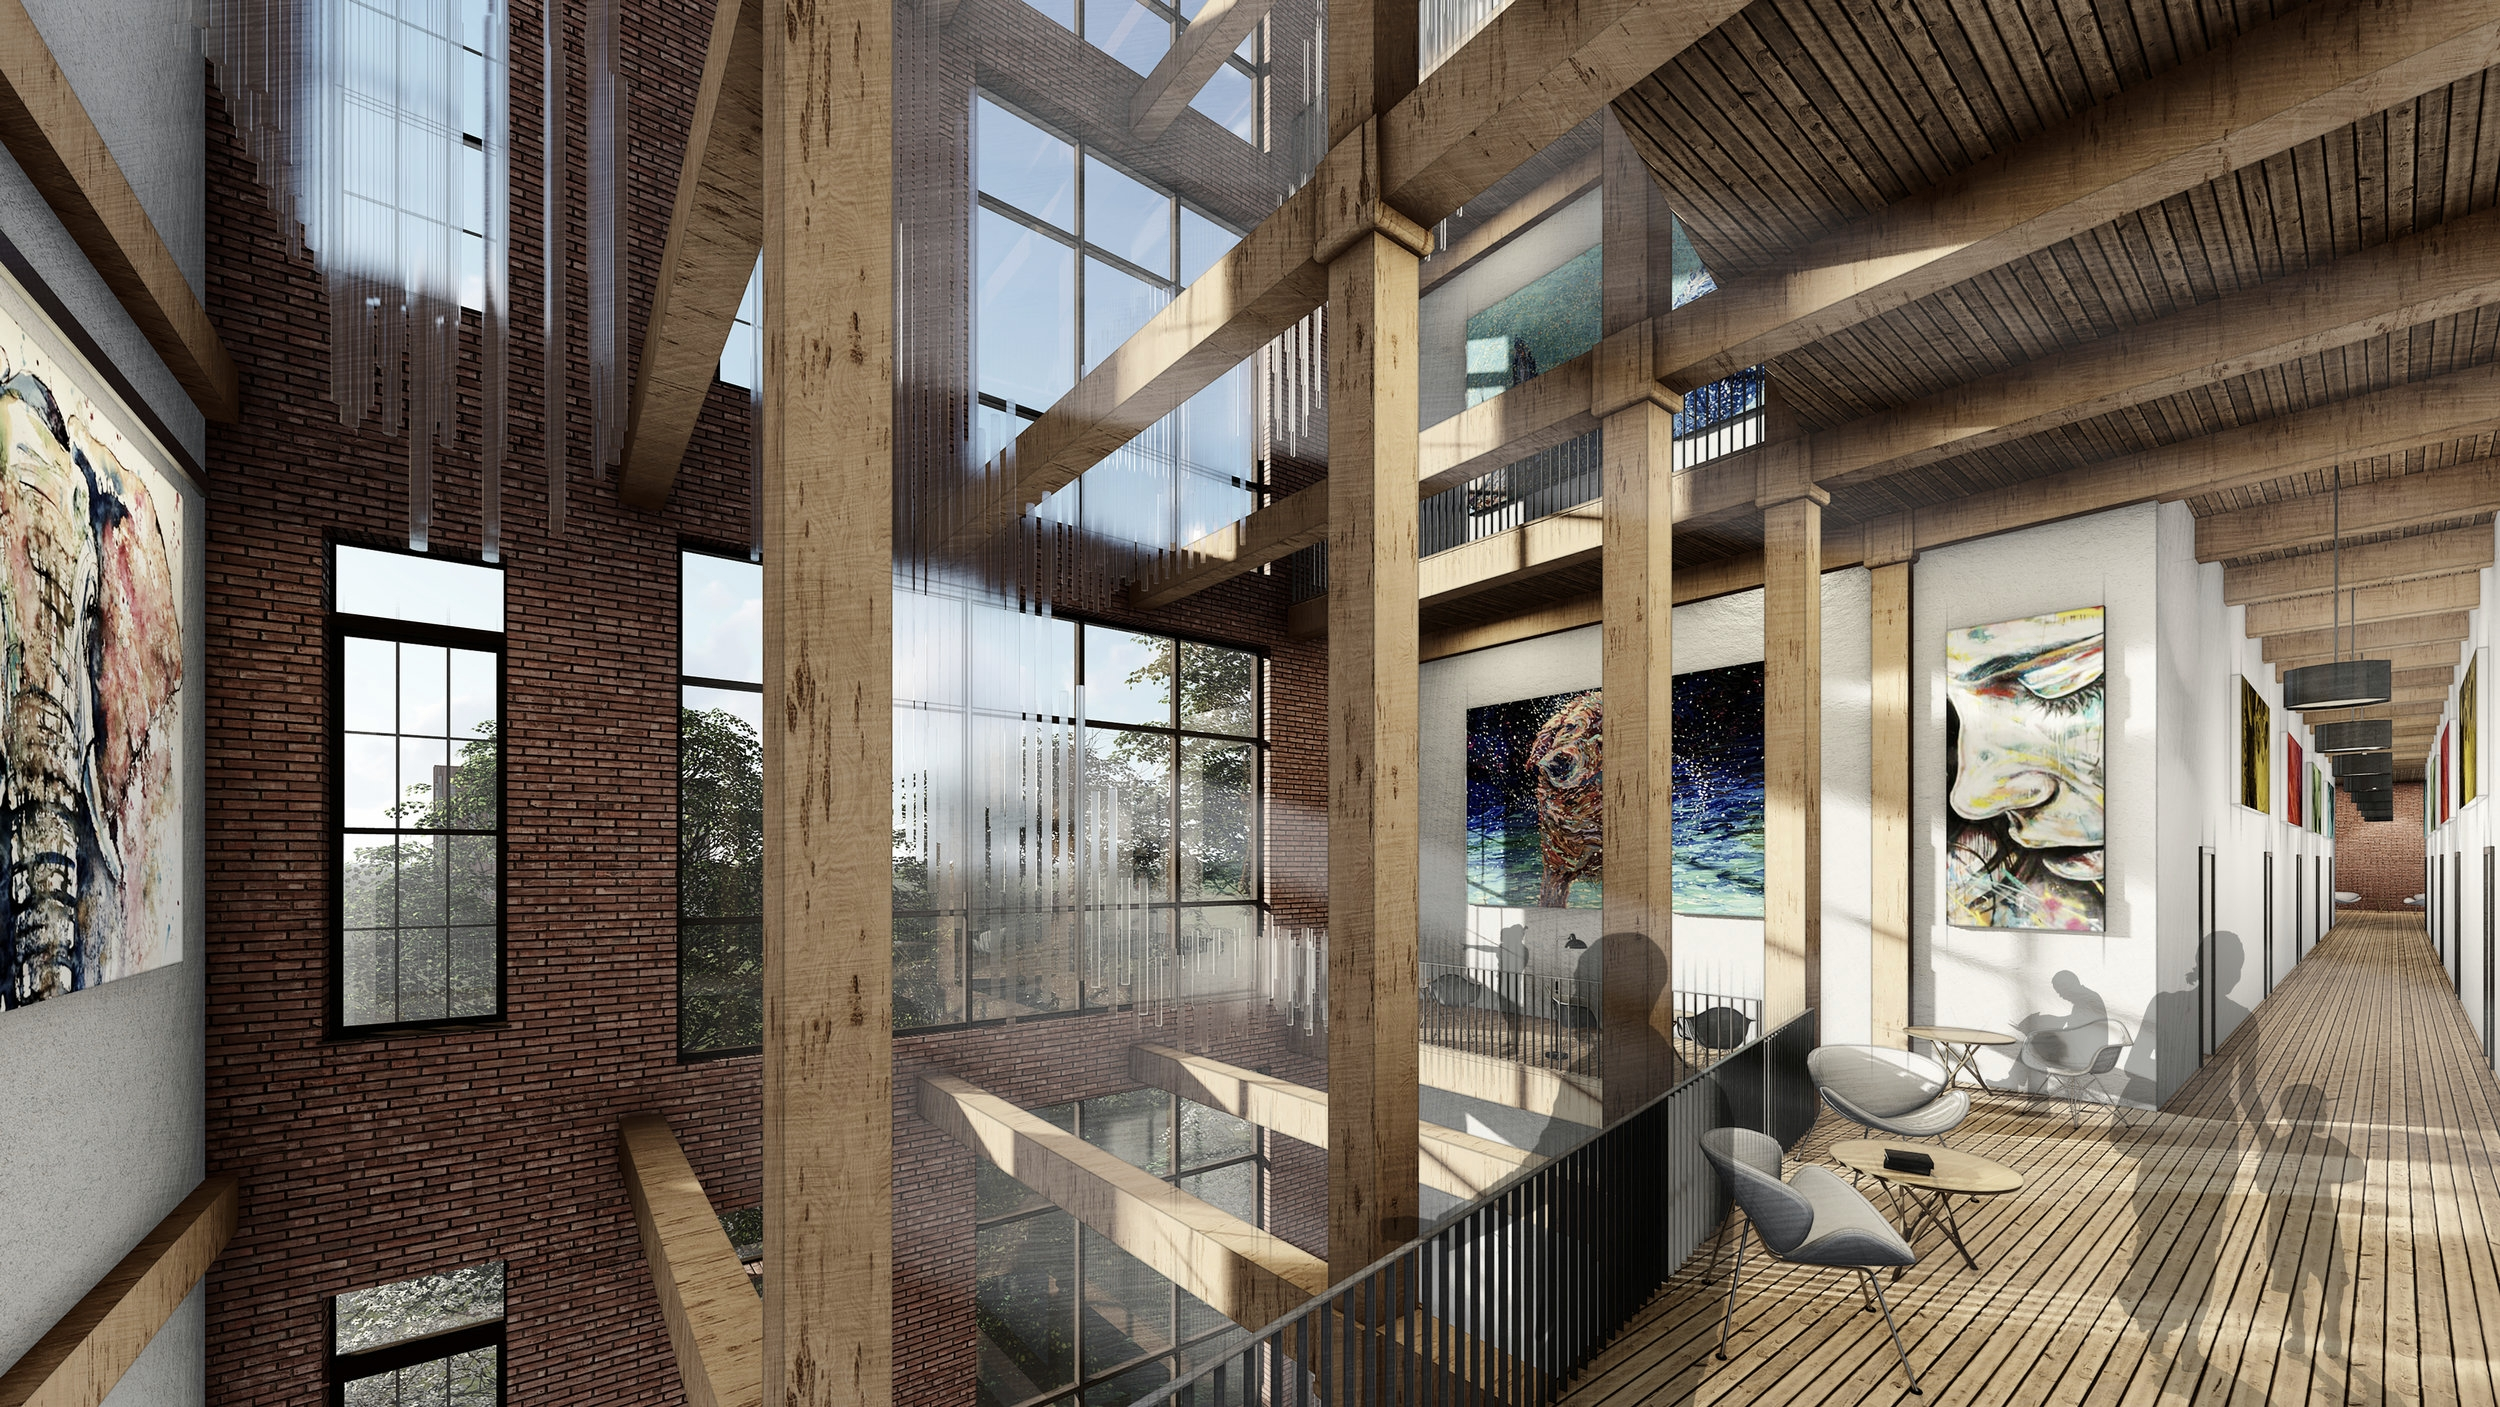 ATRIUM VIEW LOOKING WEST - OOMBRA ARCHITECTS ©